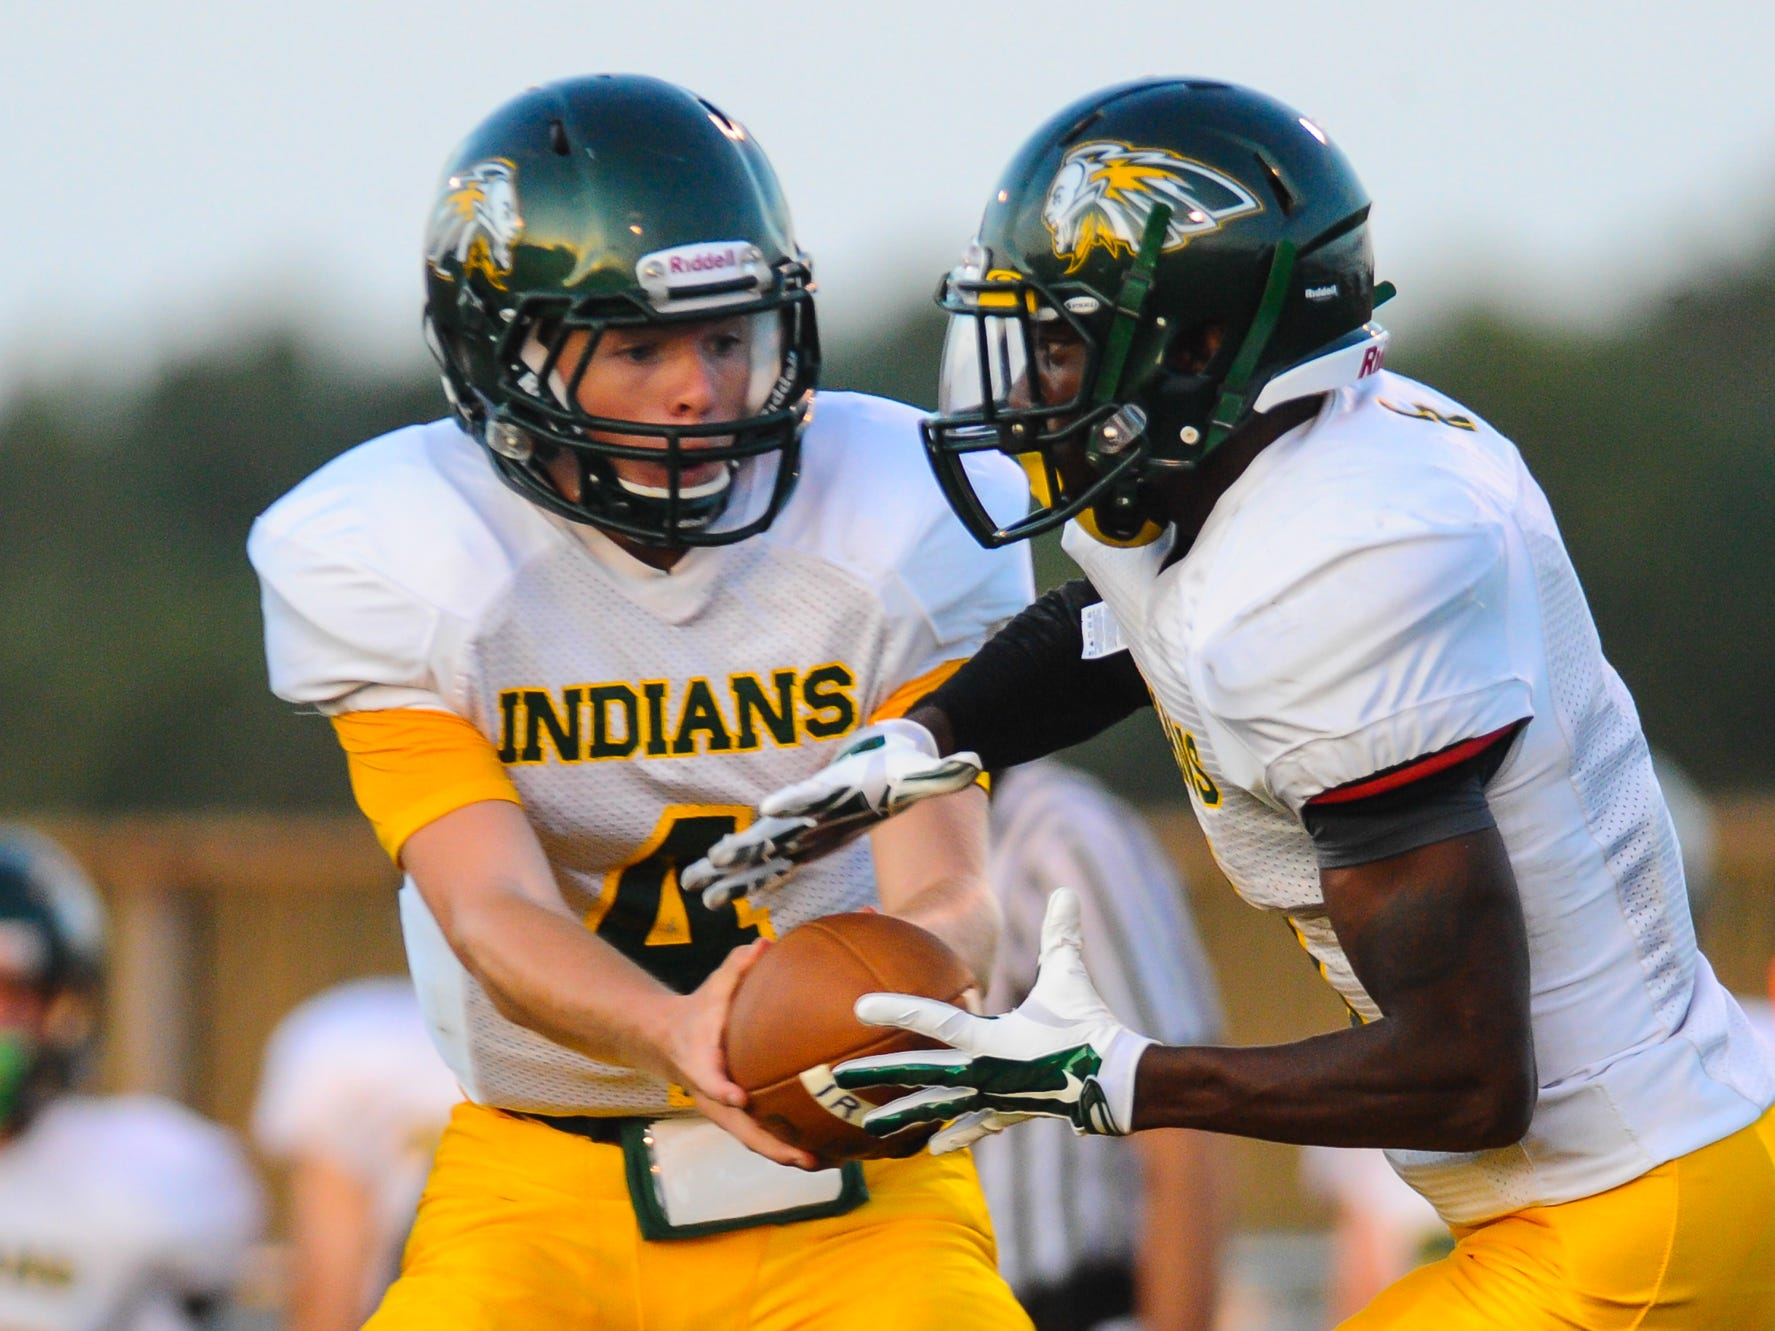 Indian River quarterback Jacob Hudson hands off to running back KiAnte Sturgis against Stephen Decatur on Friday night in Berlin.